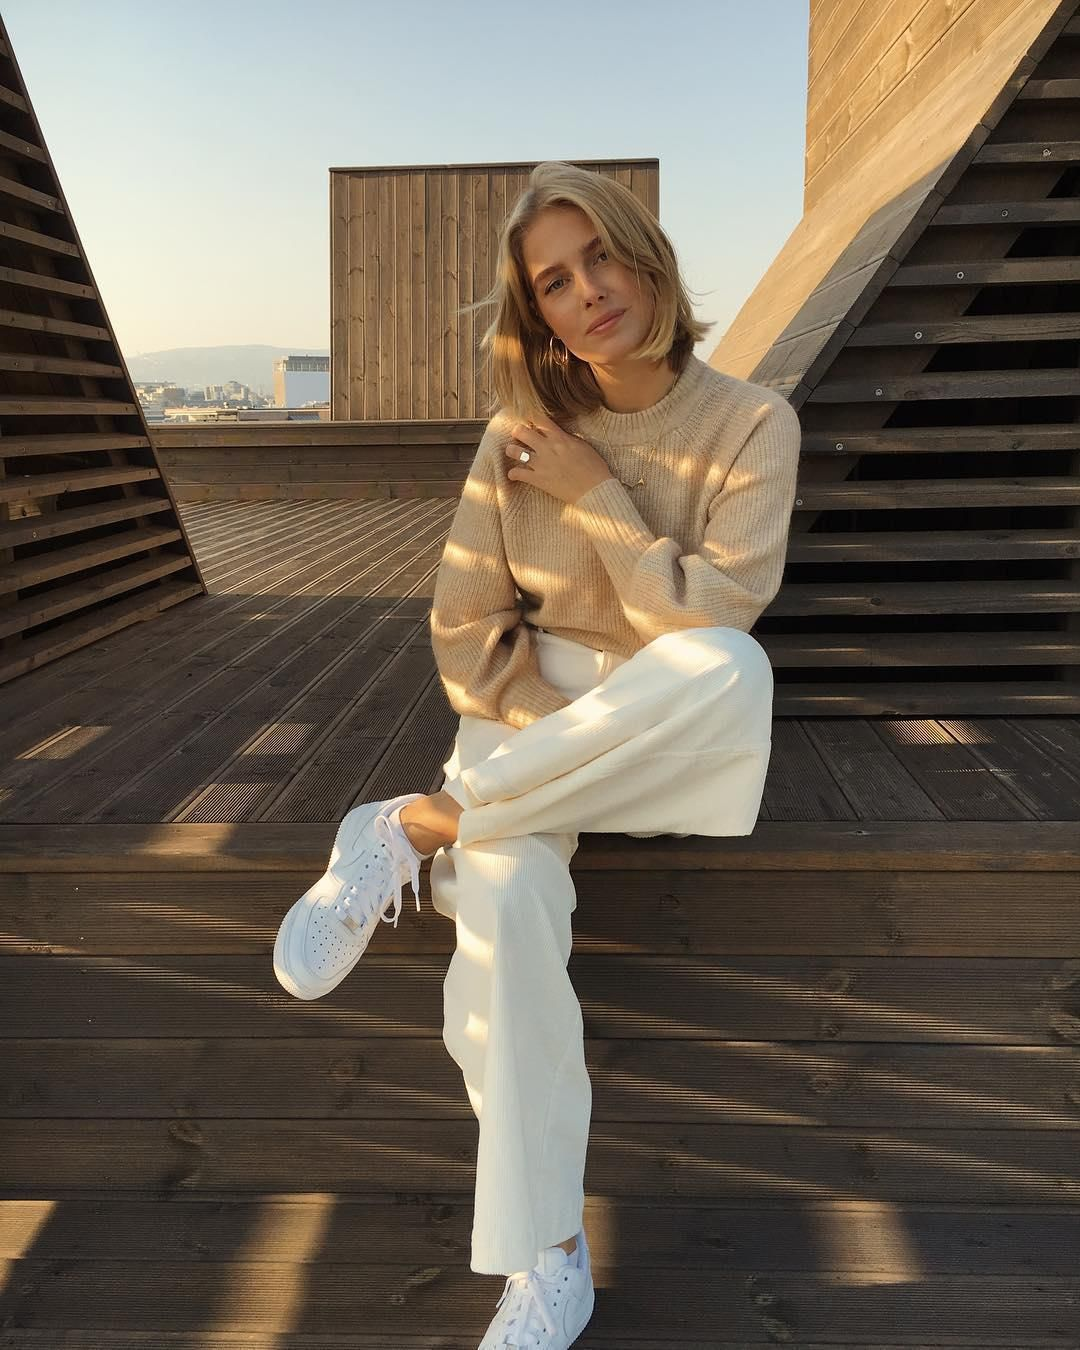 Ganni street style | Cecilie Engh Lileng | Ridgewood Pants